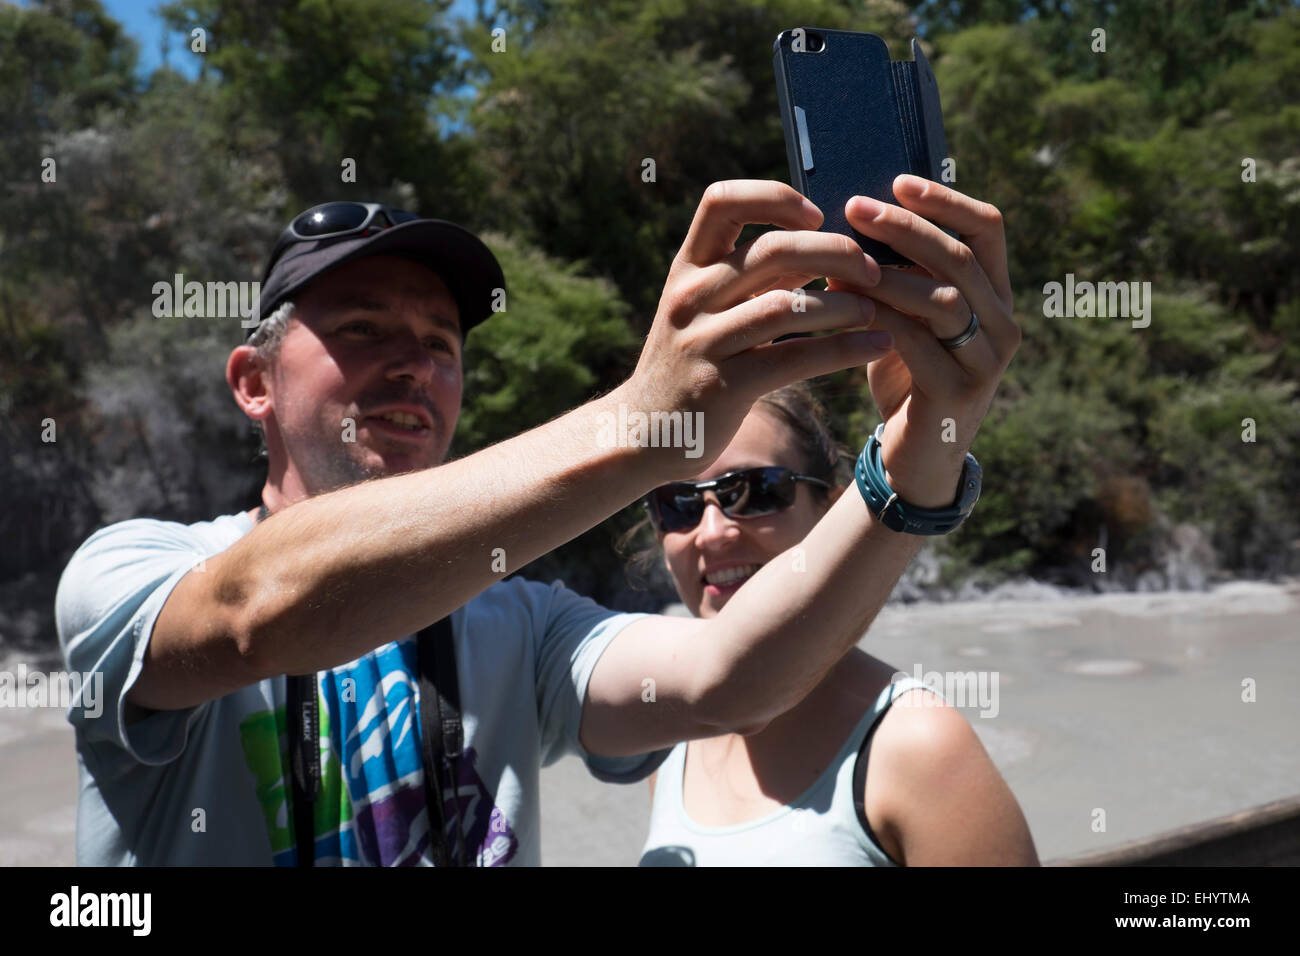 Broter and siser making a selfie with cell phone - Stock Image